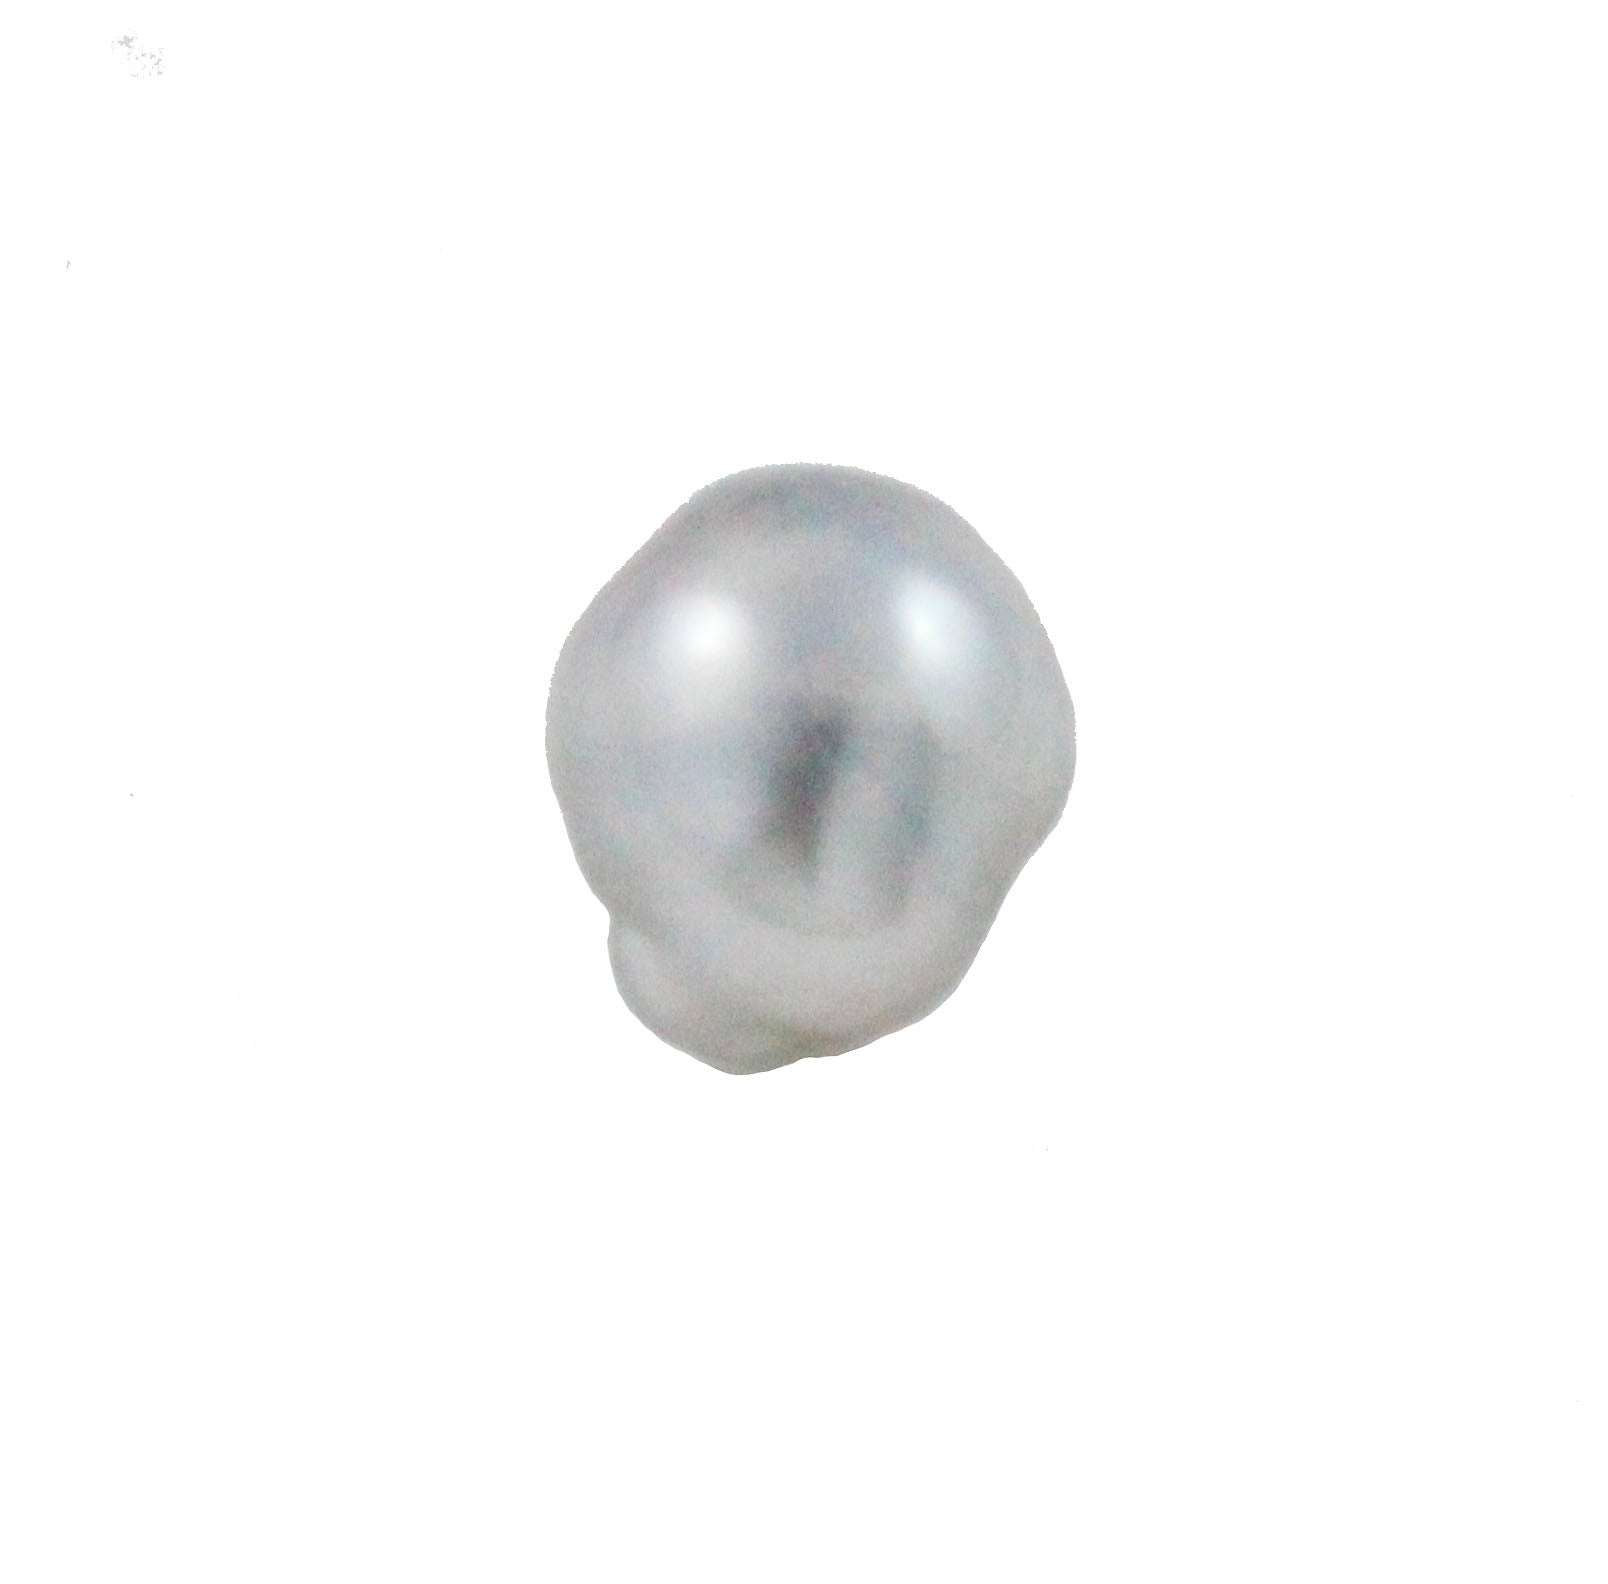 Tahitian pearl undrilled 0.93gr mm 9.88x8.37mm - Purchase only with custom order - Sarah Hughes - 2